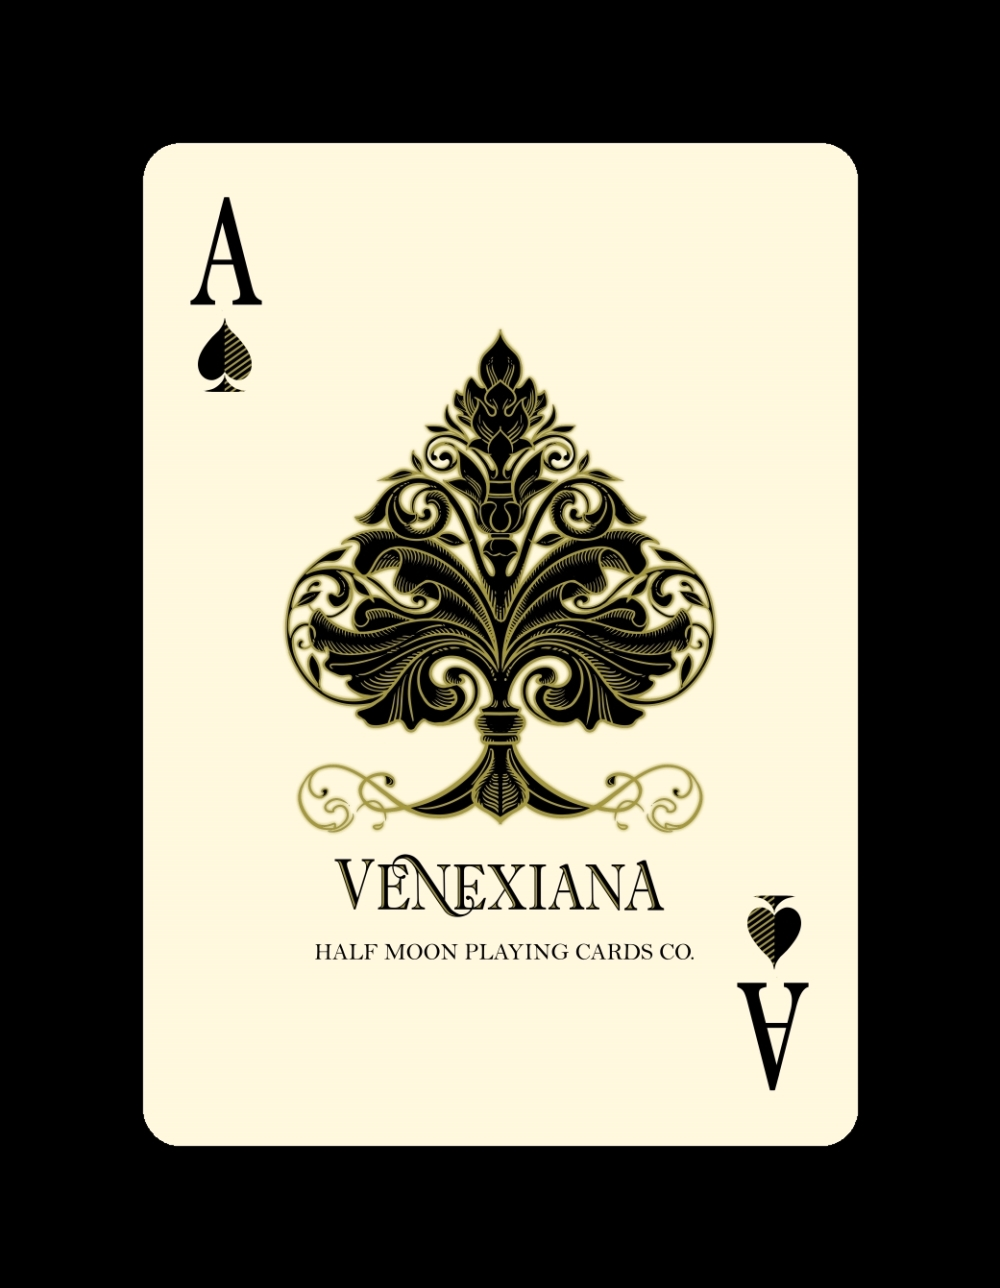 Ace Of Pentacles Images On Pinterest: Venexiana_Ace Of Diamonds Med